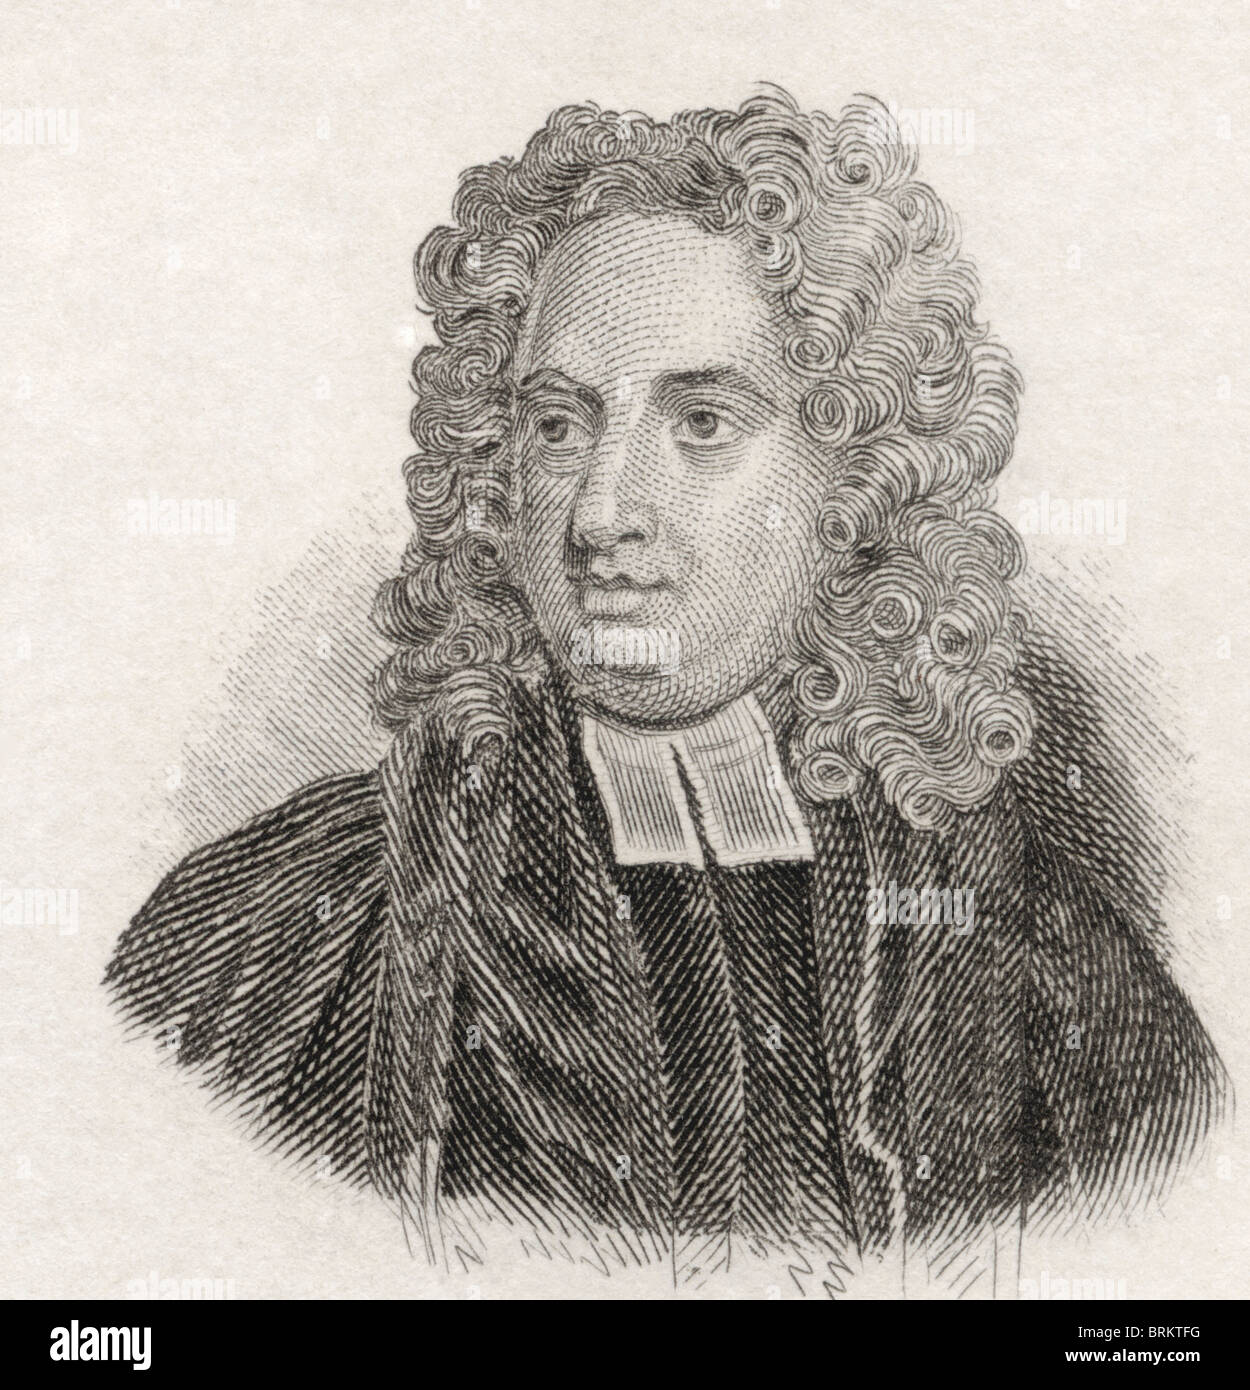 Jonathan Swift, 1667 to 1745. Anglo-Irish satirist, essayist, political pamphleteer, poet and cleric. - Stock Image